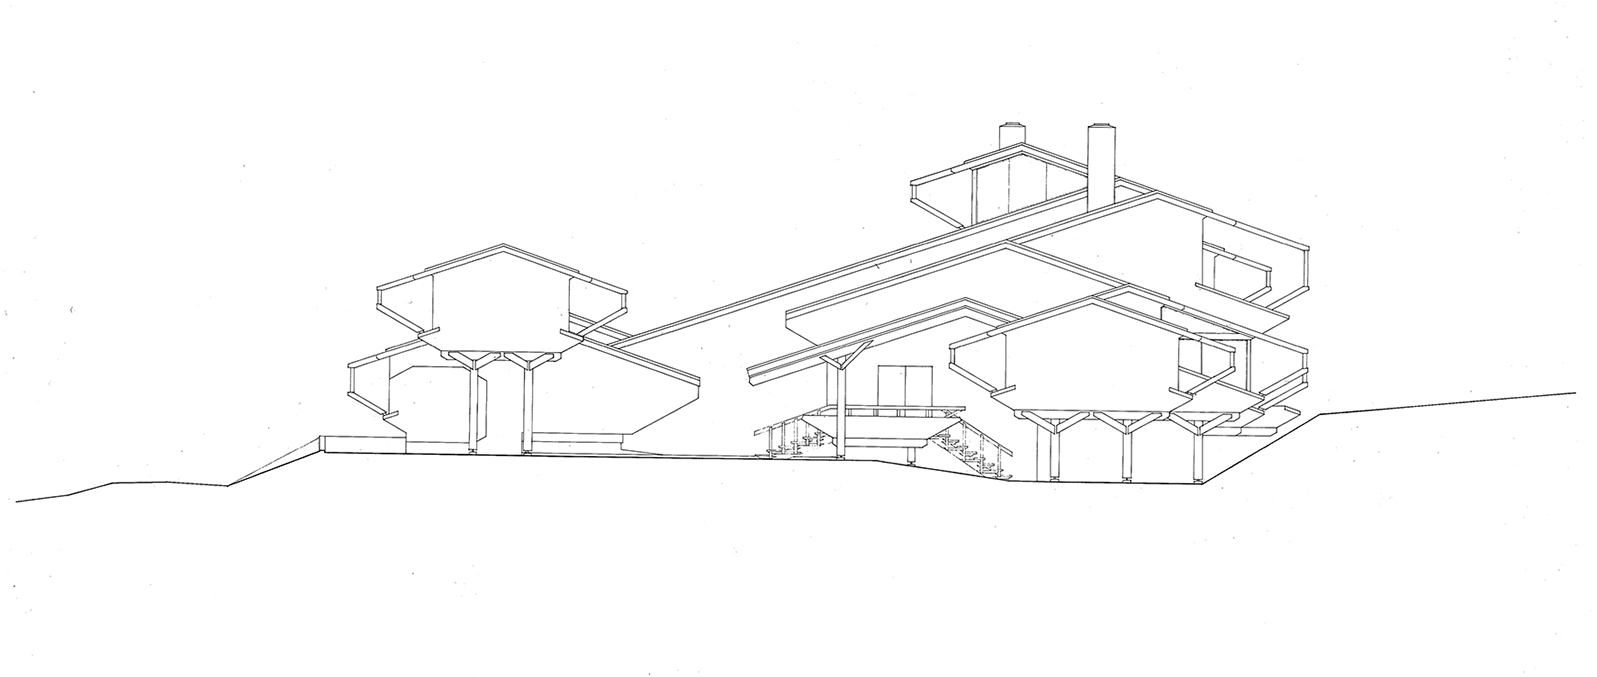 Deane residence, Great Neck, New York. Building Elevation.